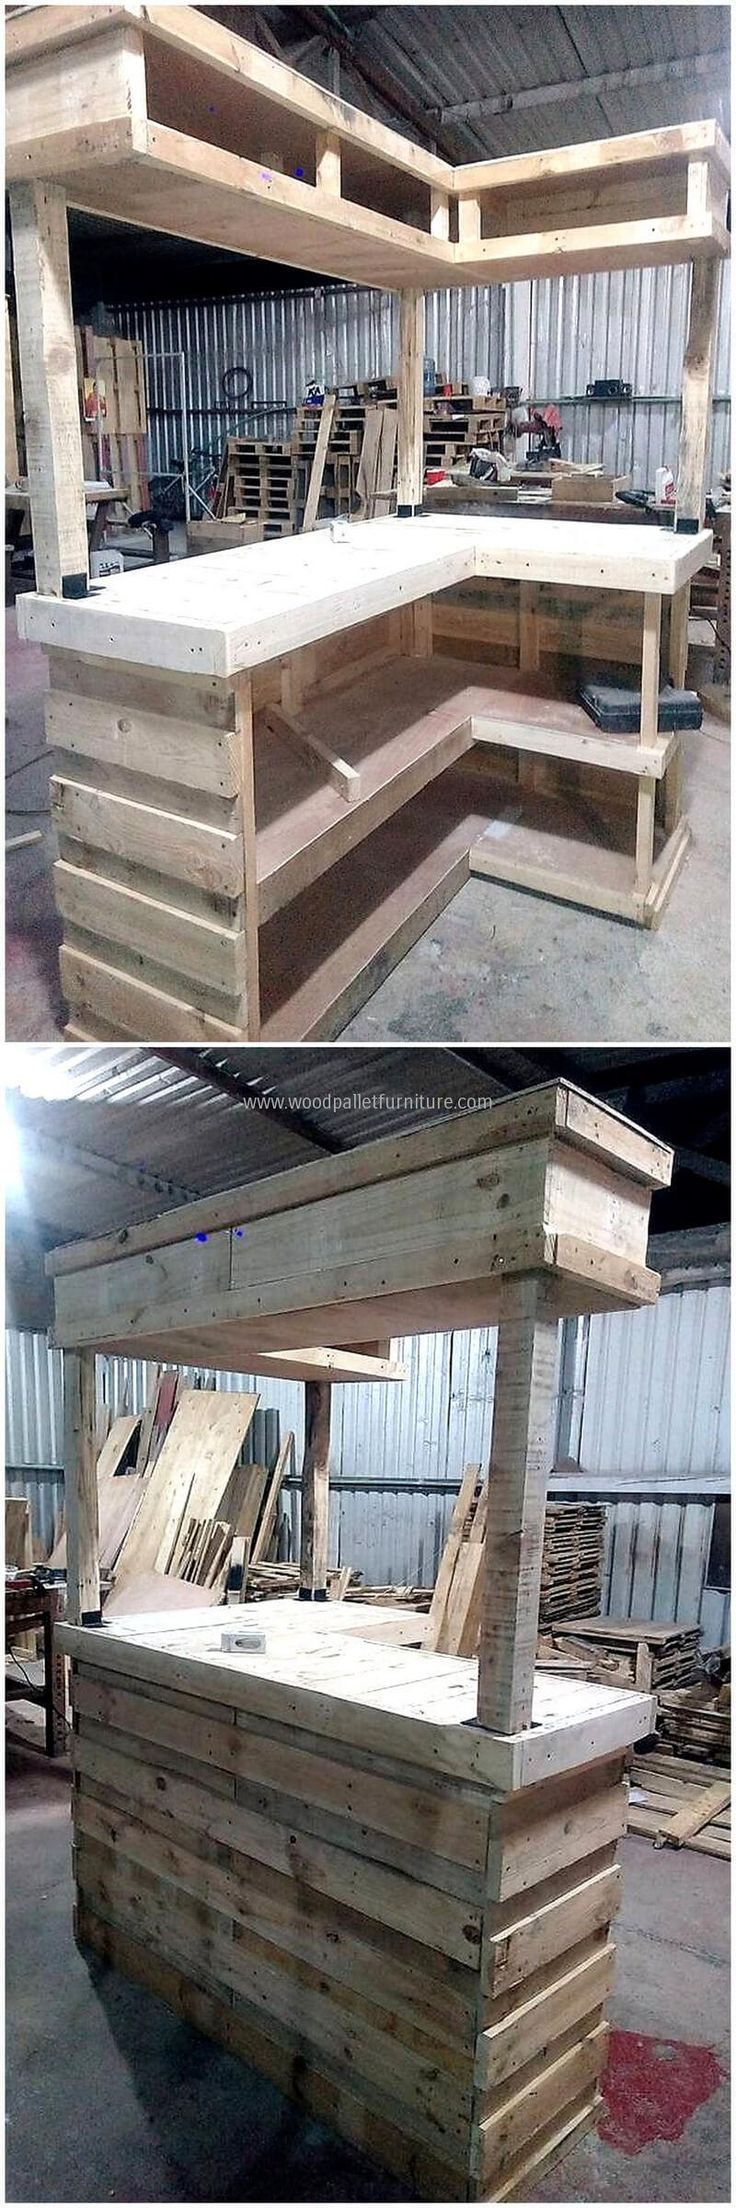 Repurposing Projects with Reclaimed Wooden Pallets